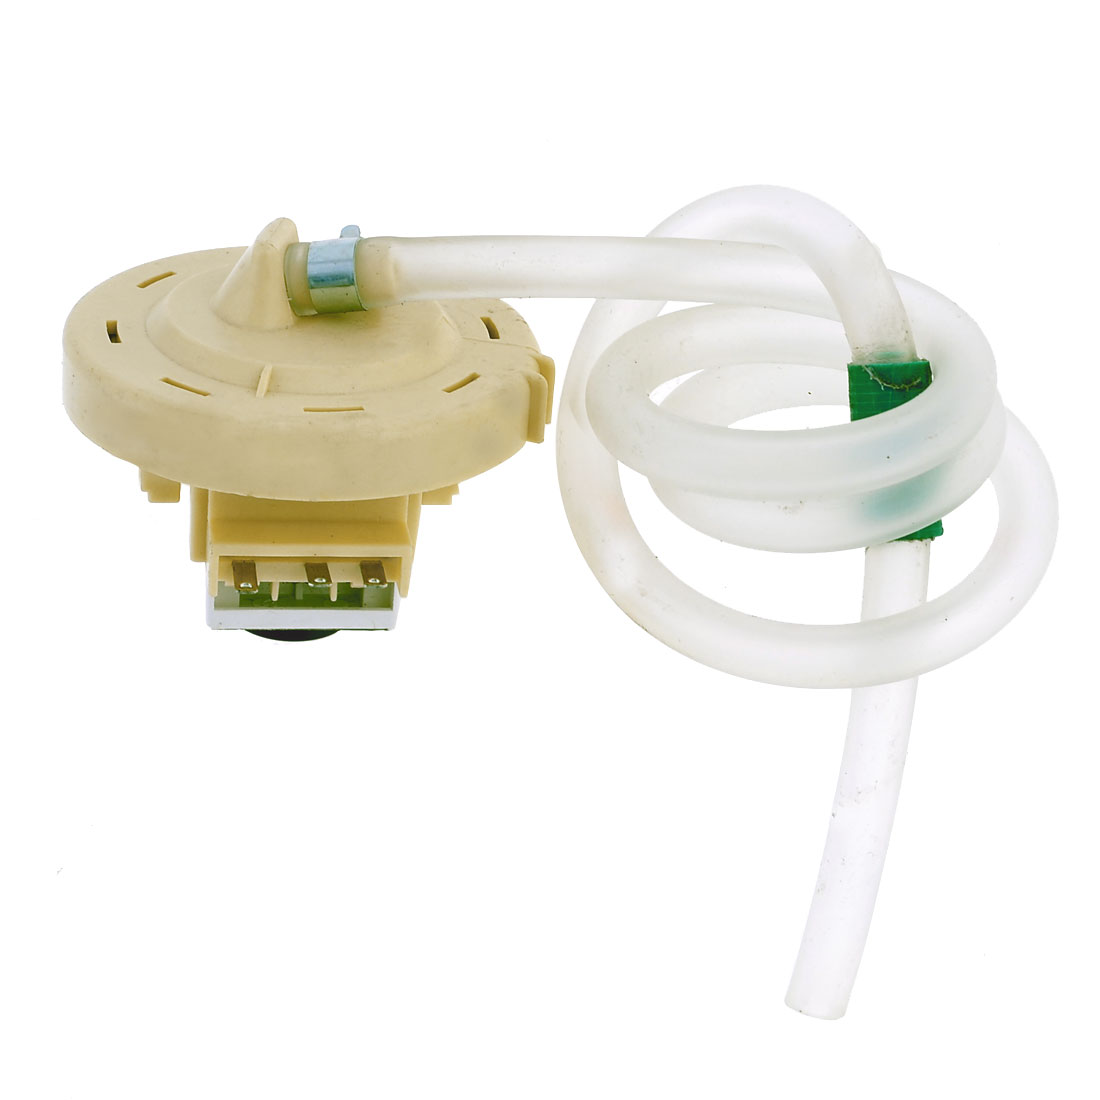 DC 5V 3 Pins Water Liquid Level Switch + Flexible Tube for Washing Machine